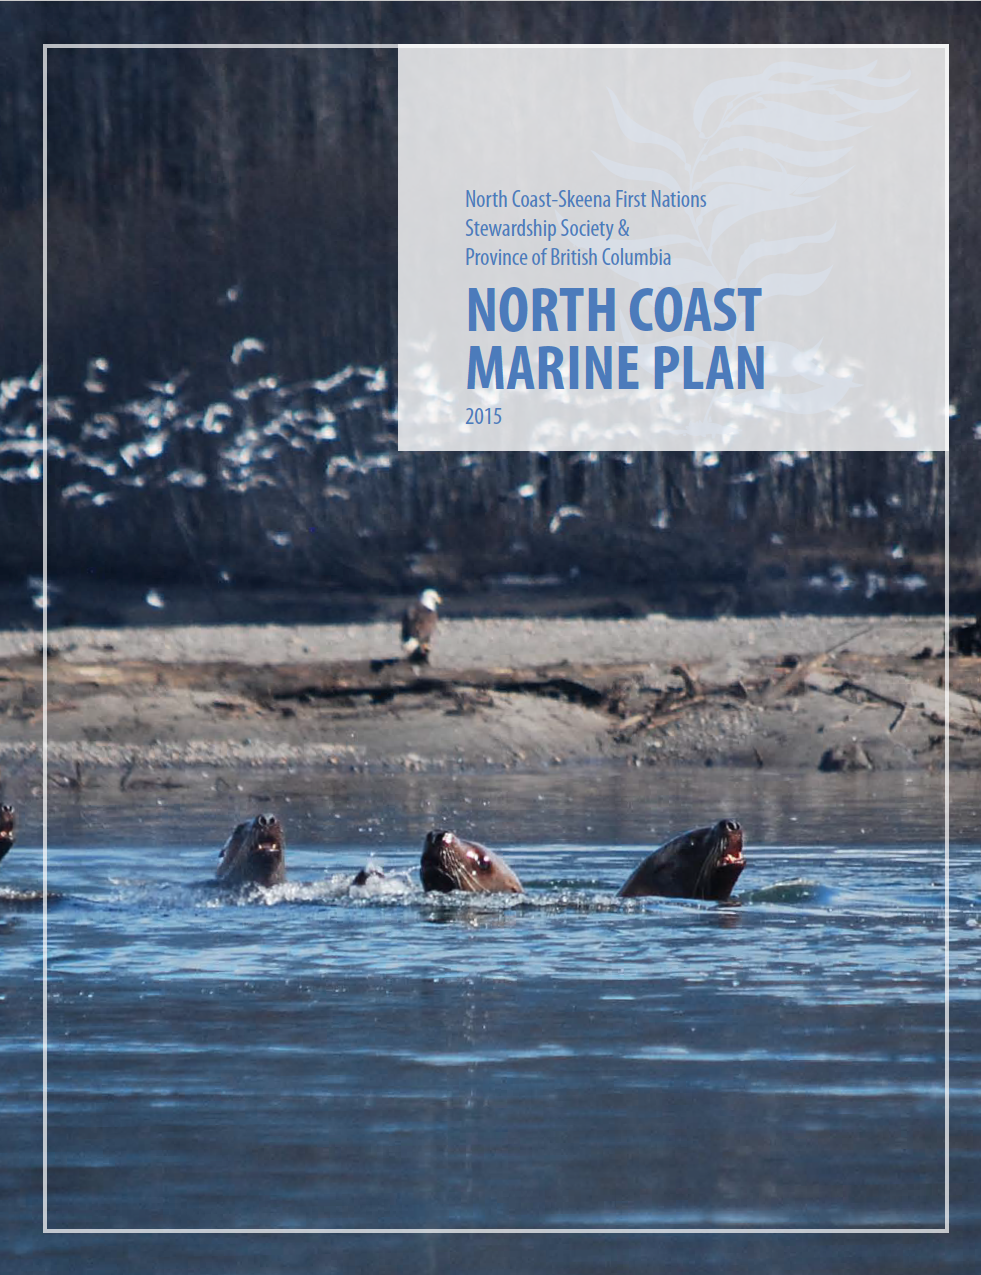 North Coast Marine Plan